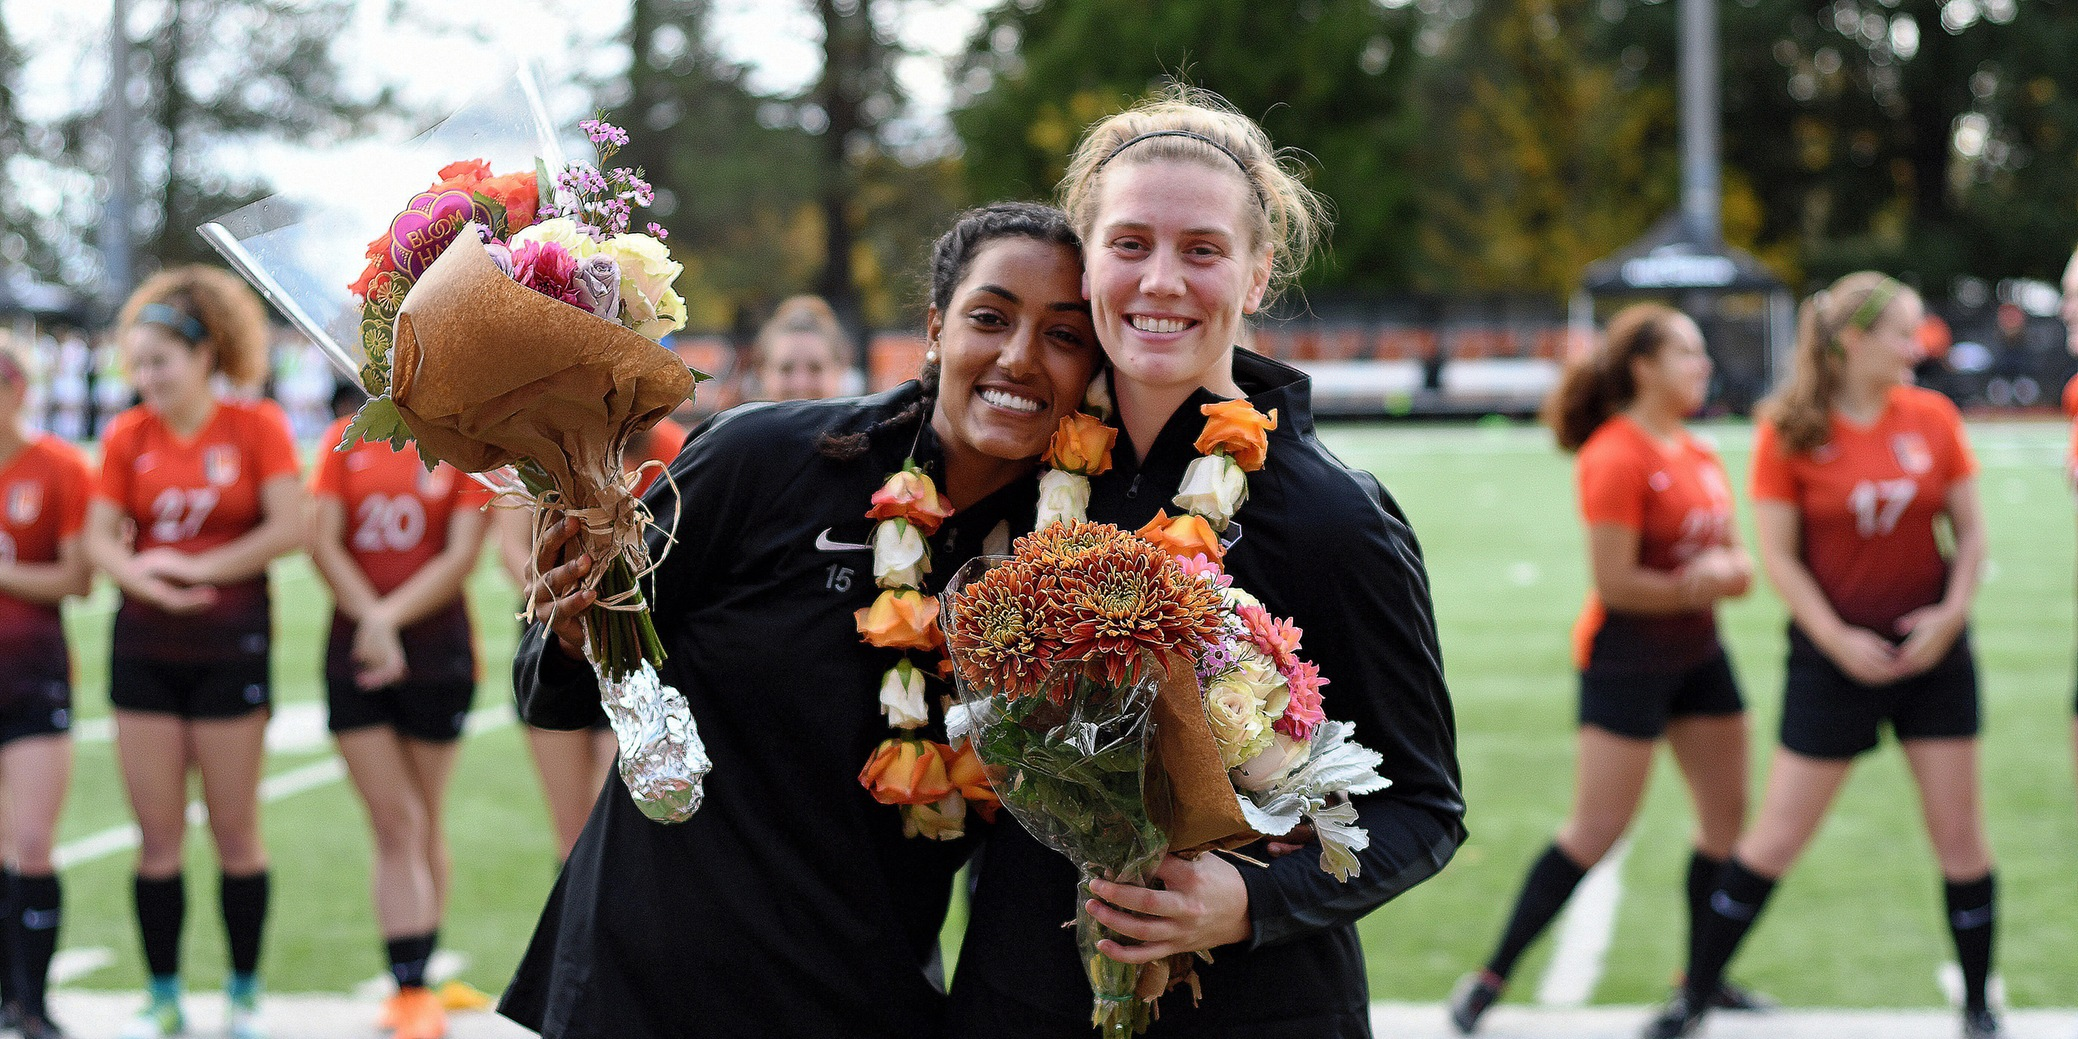 Lutz scores goal in her final game, not enough to overcome Whitworth